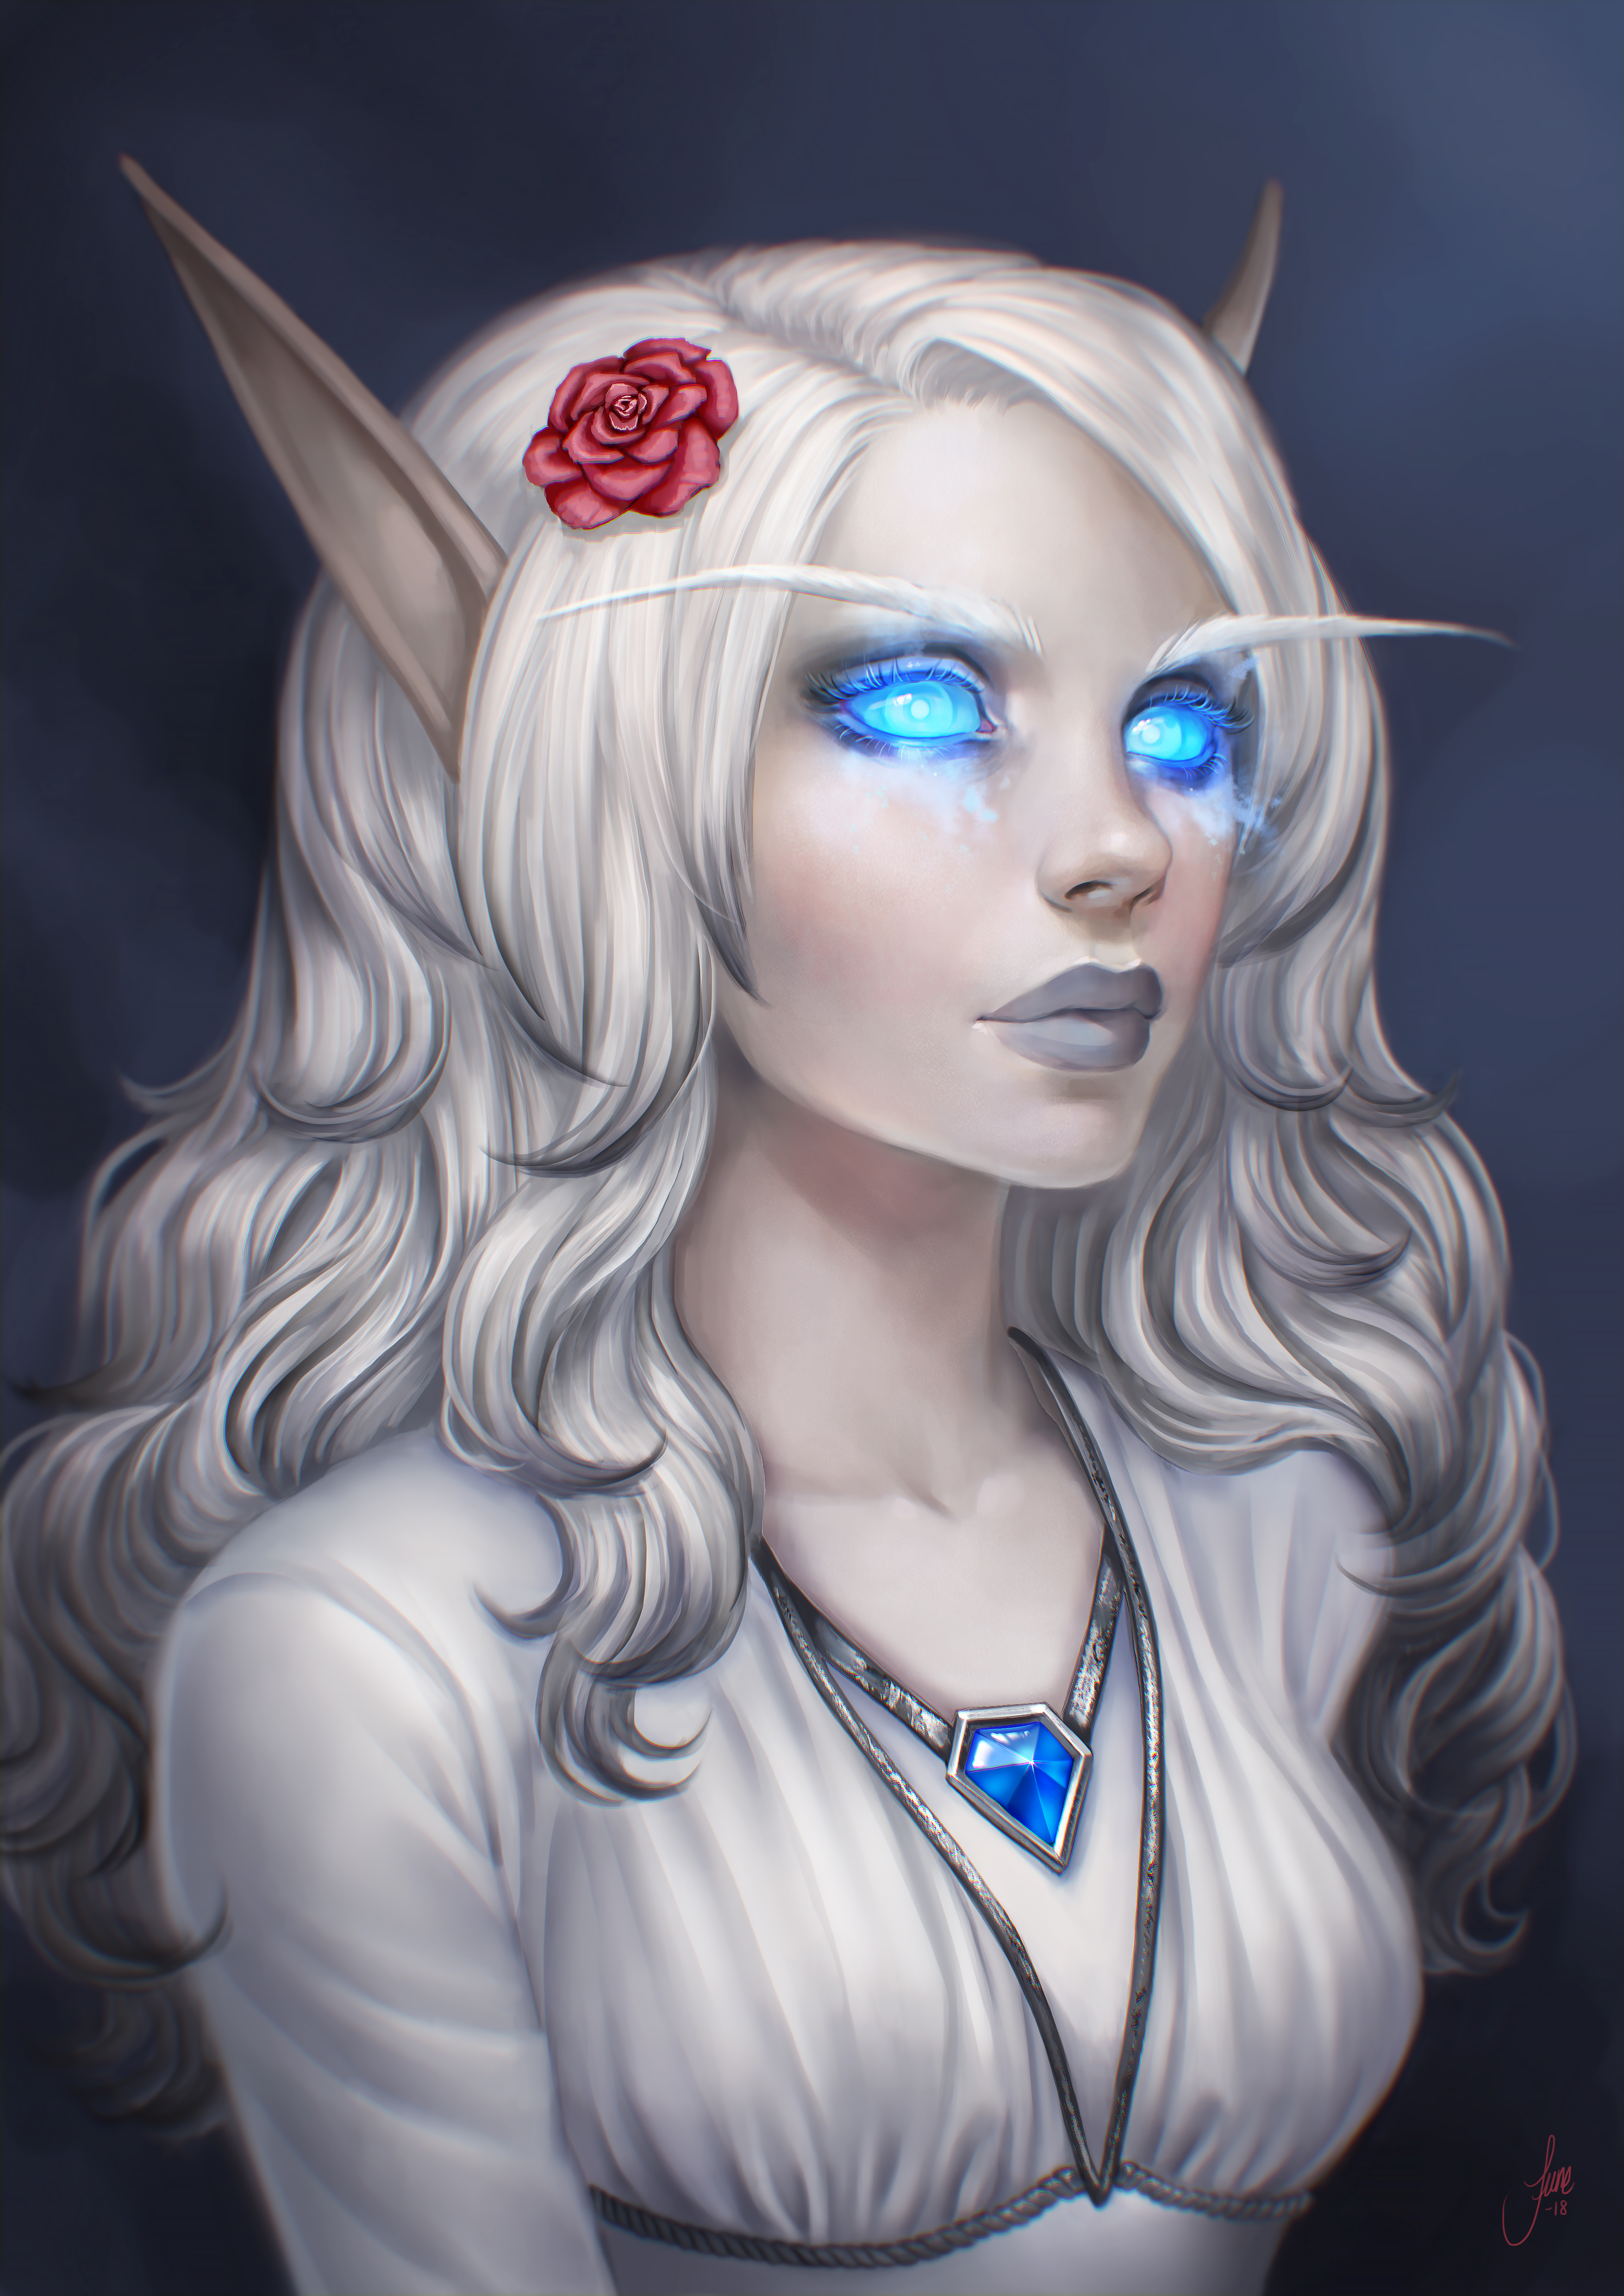 General 3508x4961 World of Warcraft fantasy girl blue eyes long hair fantasy art PC gaming necklace High Elf neon blue